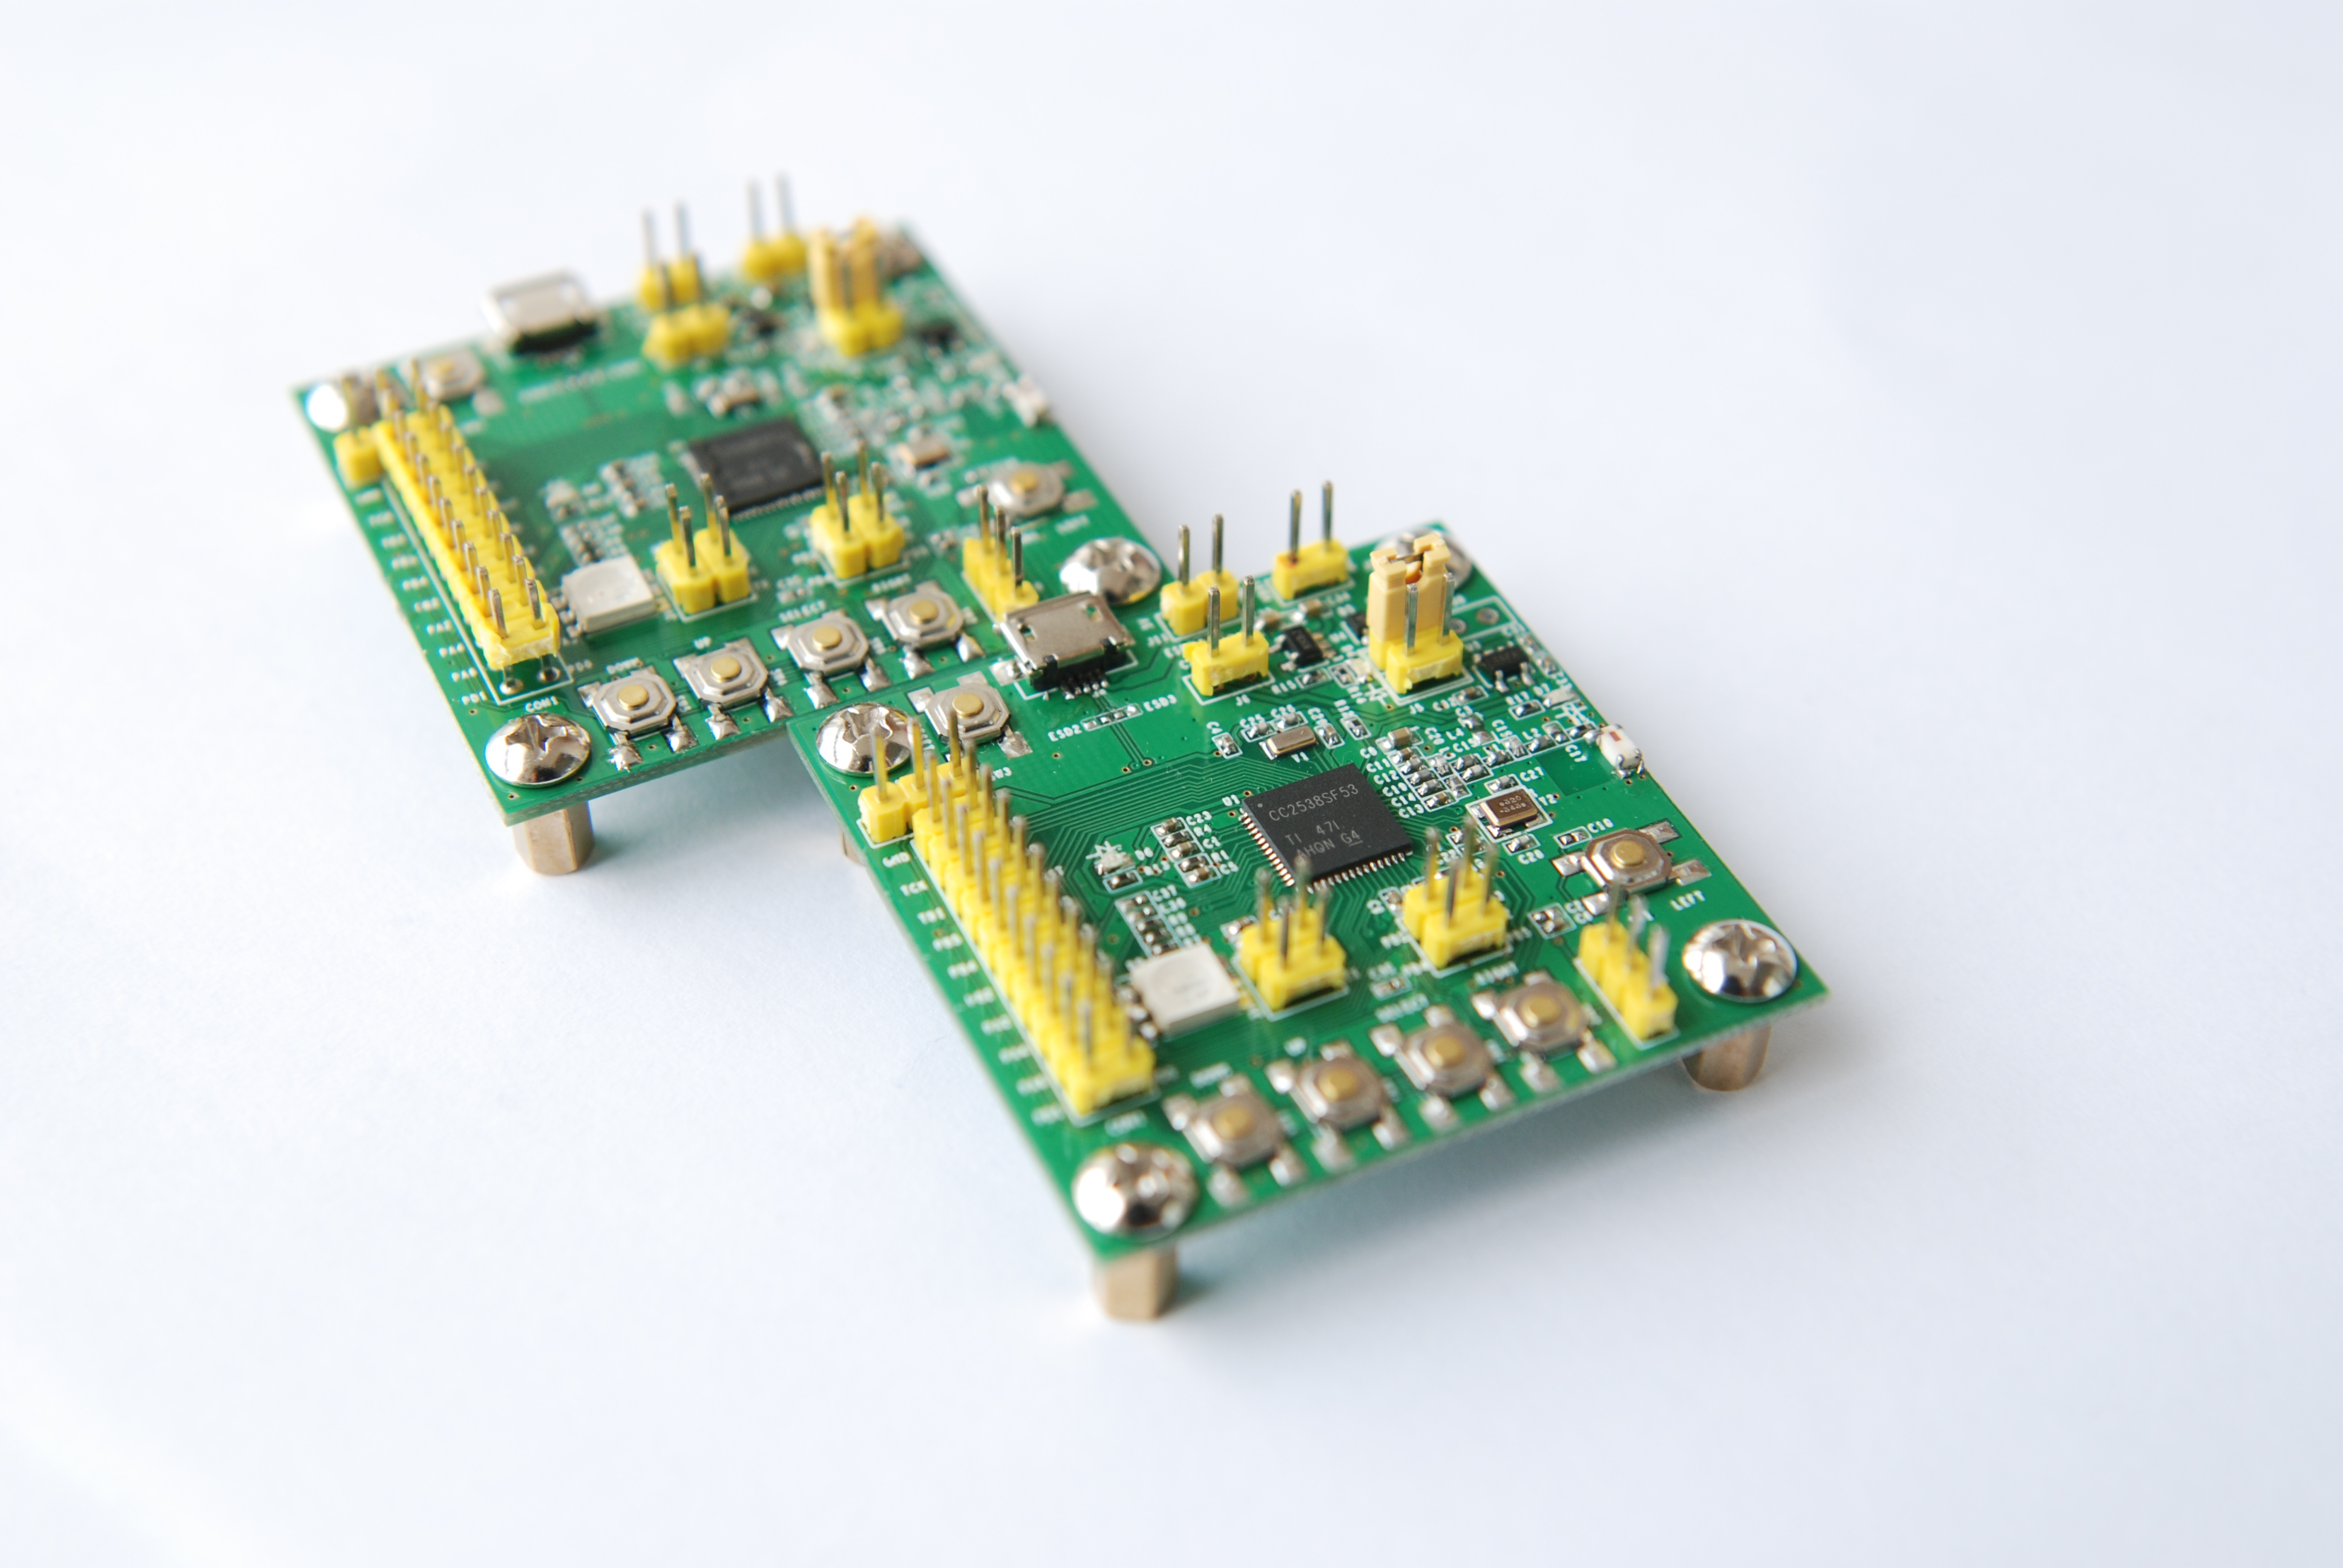 Contiki 6LOWPAN CC2538 development board, the Internet of things, ZigBee TI learning<br>